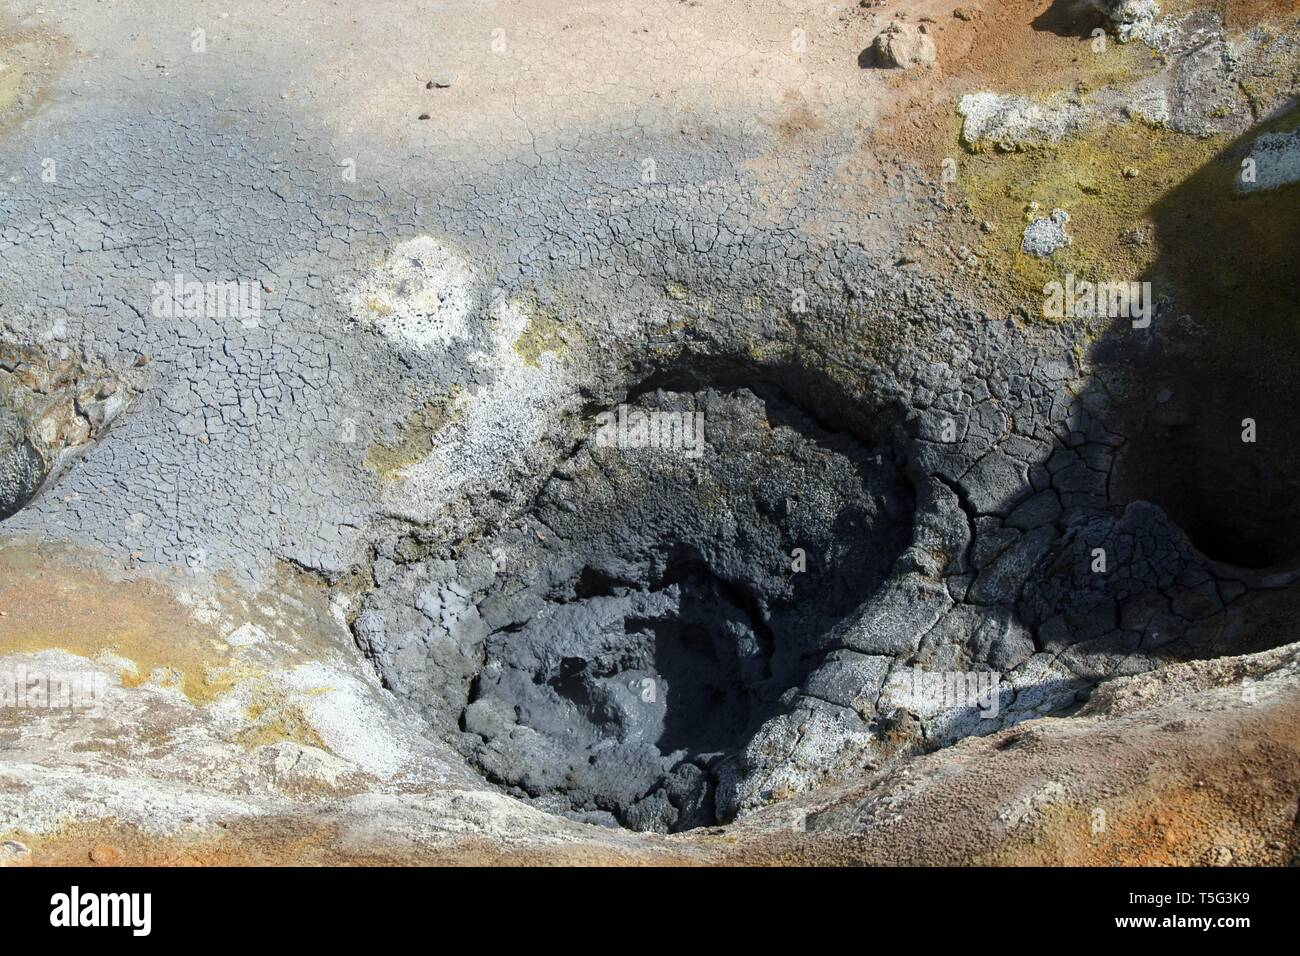 Seltun / Krysuvik (Krýsuvík): Mud pot with cracked fissured ground and deposits of yellow sulfuric acid Stock Photo